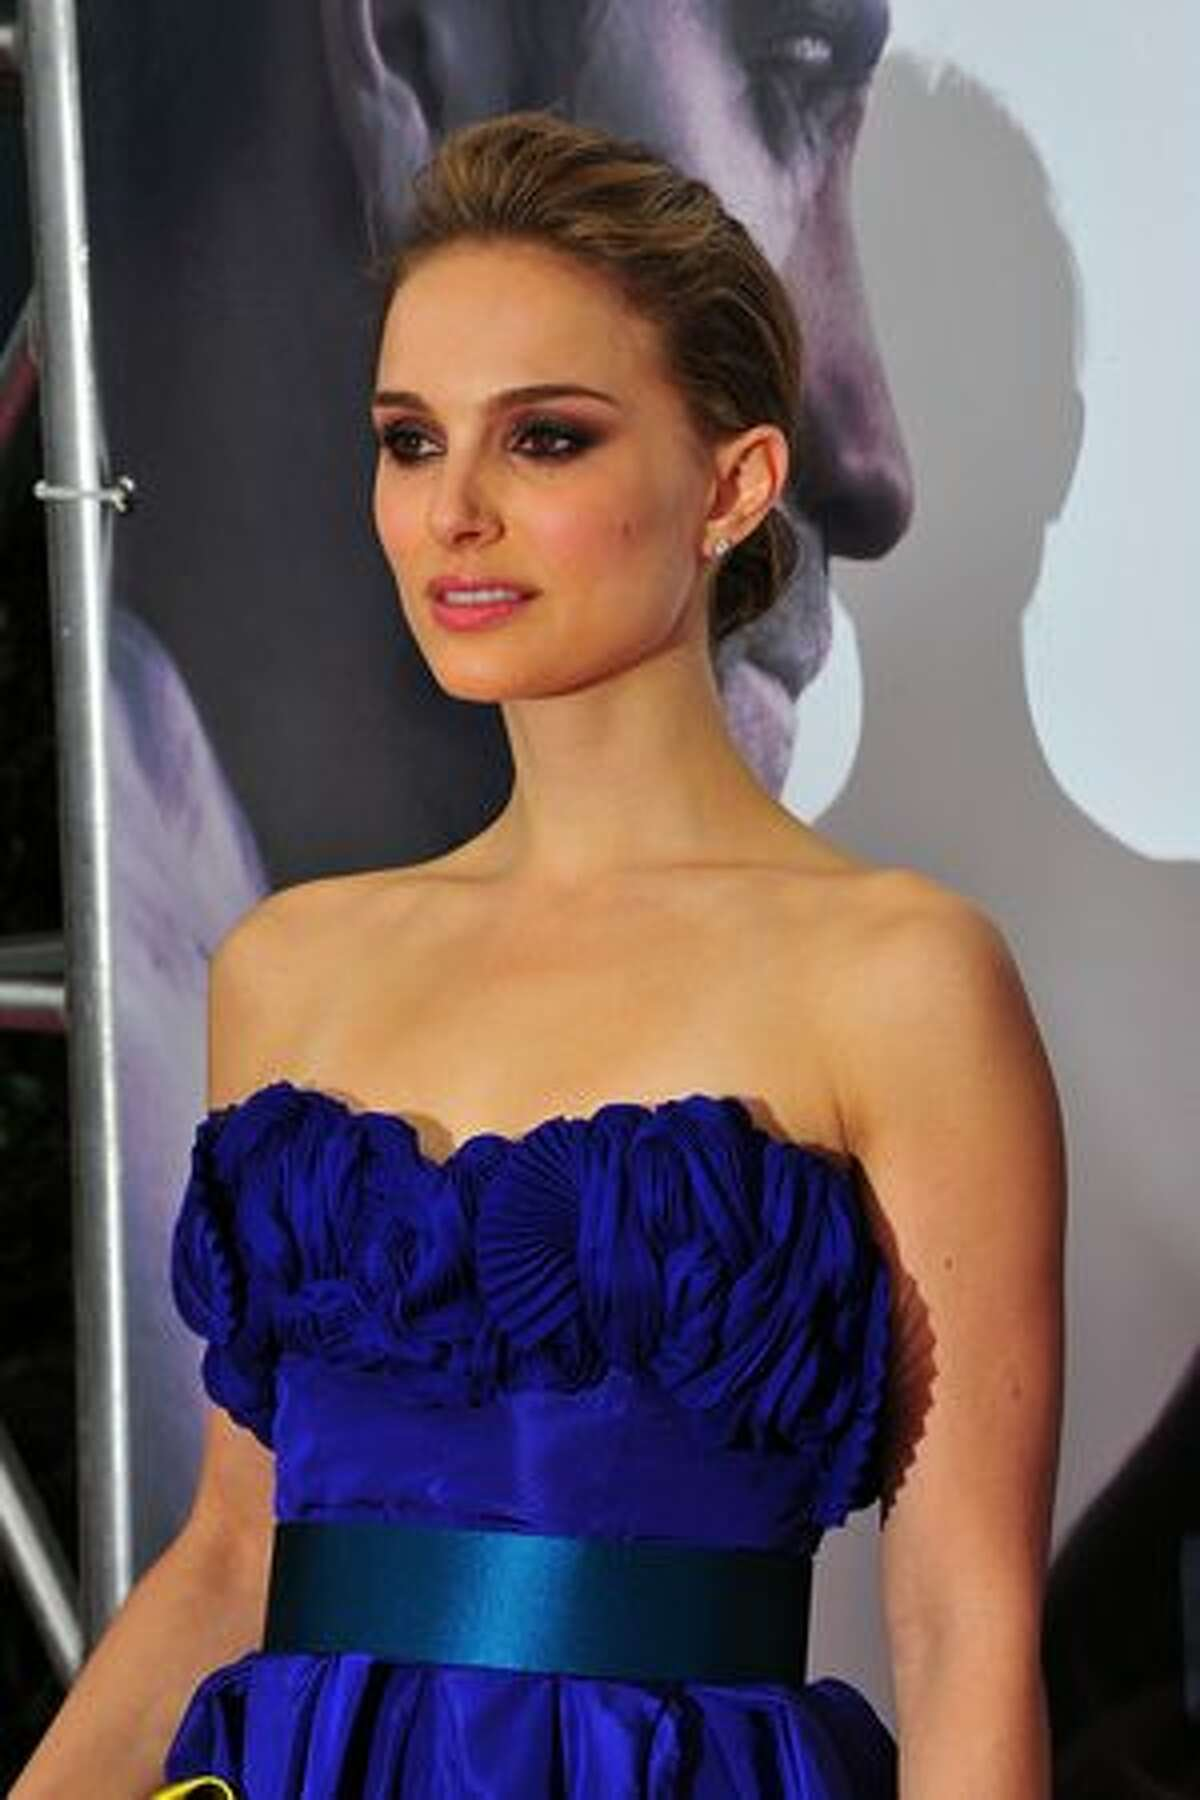 Actress Natalie Portman attends The Cinema Society, Details and DKNY screening of